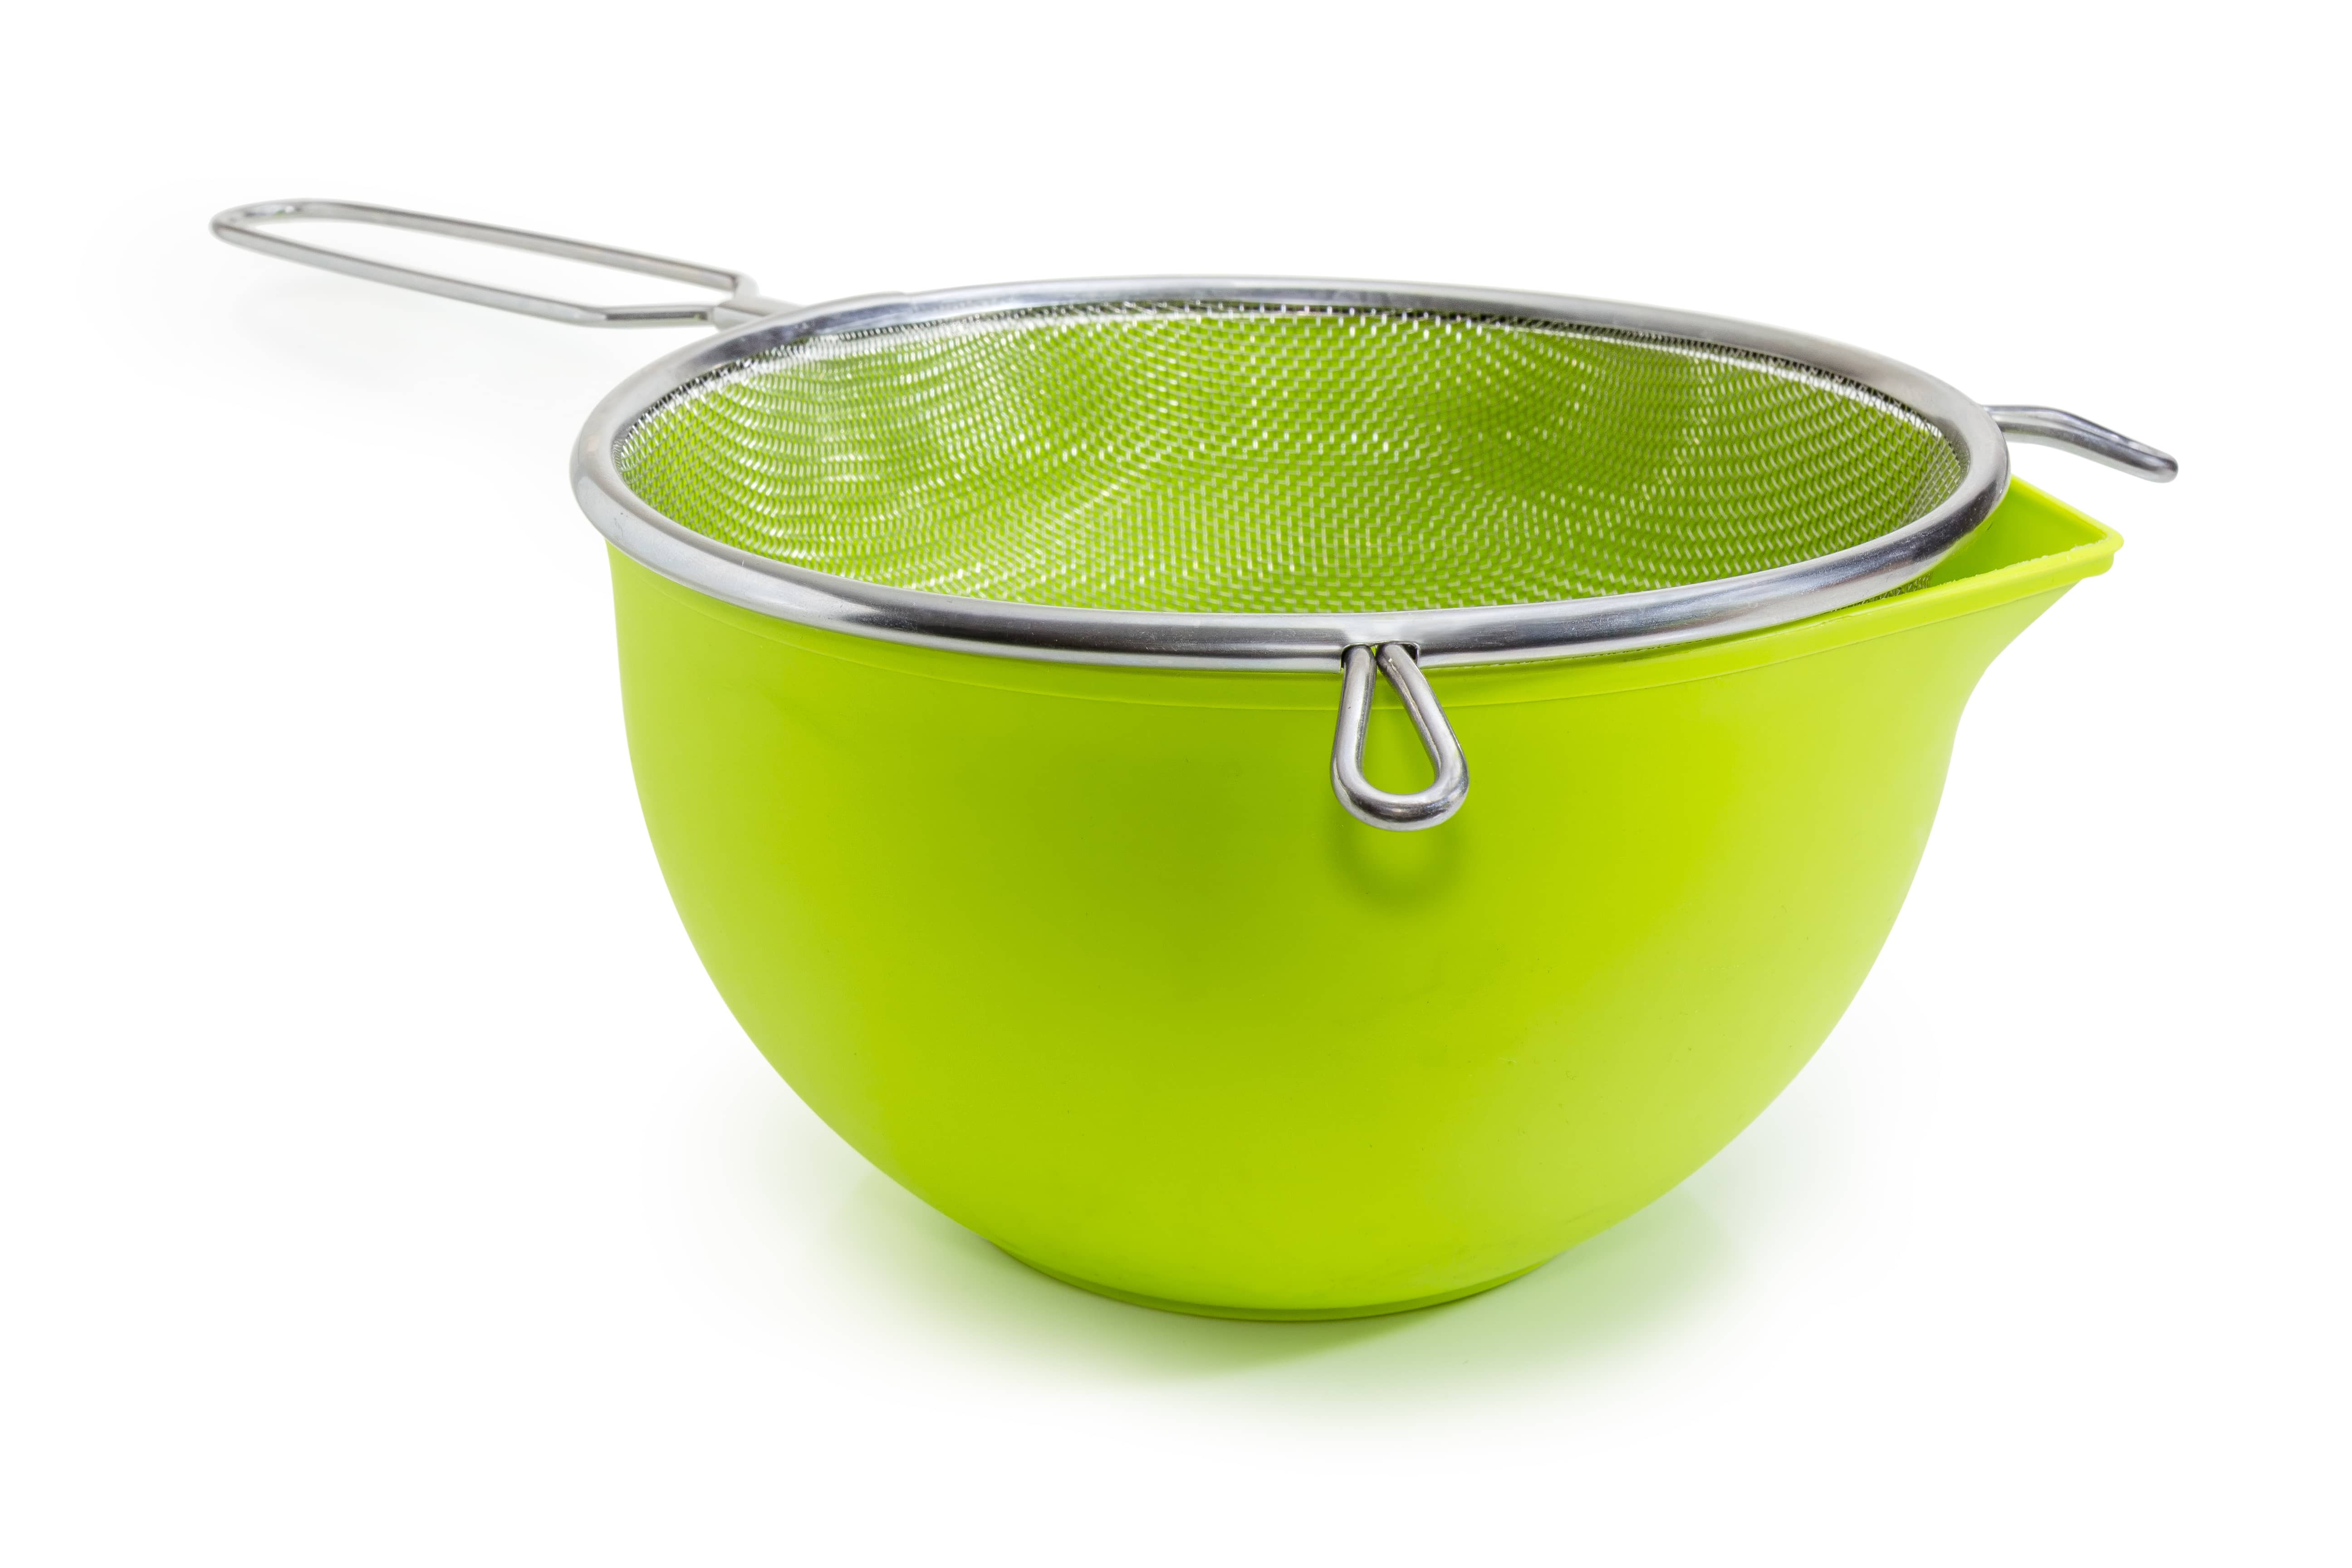 Green bowl and round stainless steel sieve with wire mesh at selective focus on a white background